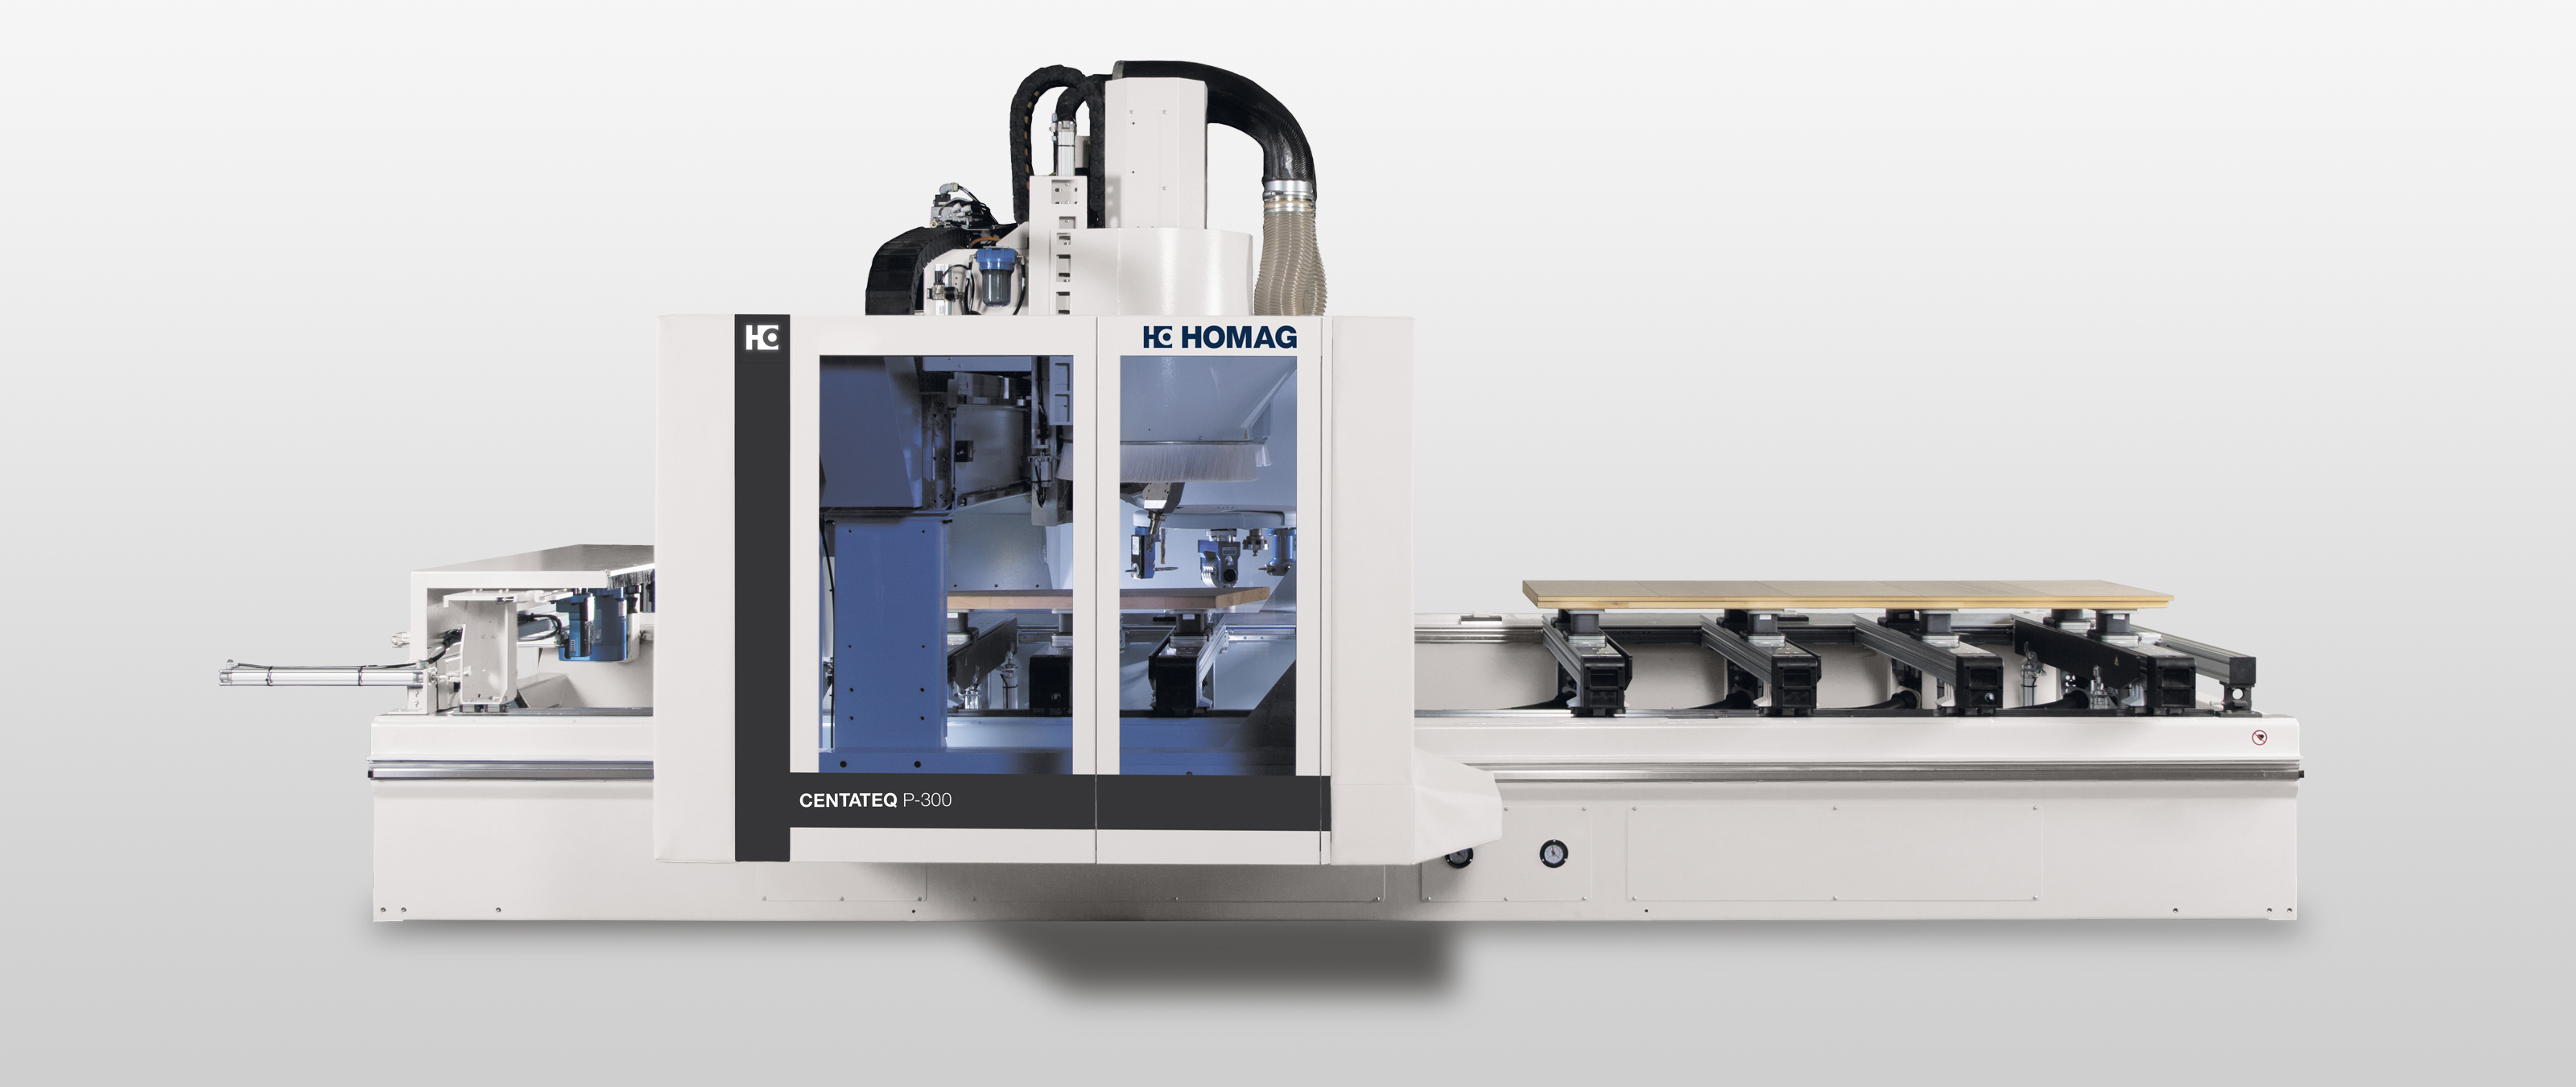 CNC-Processing ccenters Venture CENTATEQ P-300 from HOMAG